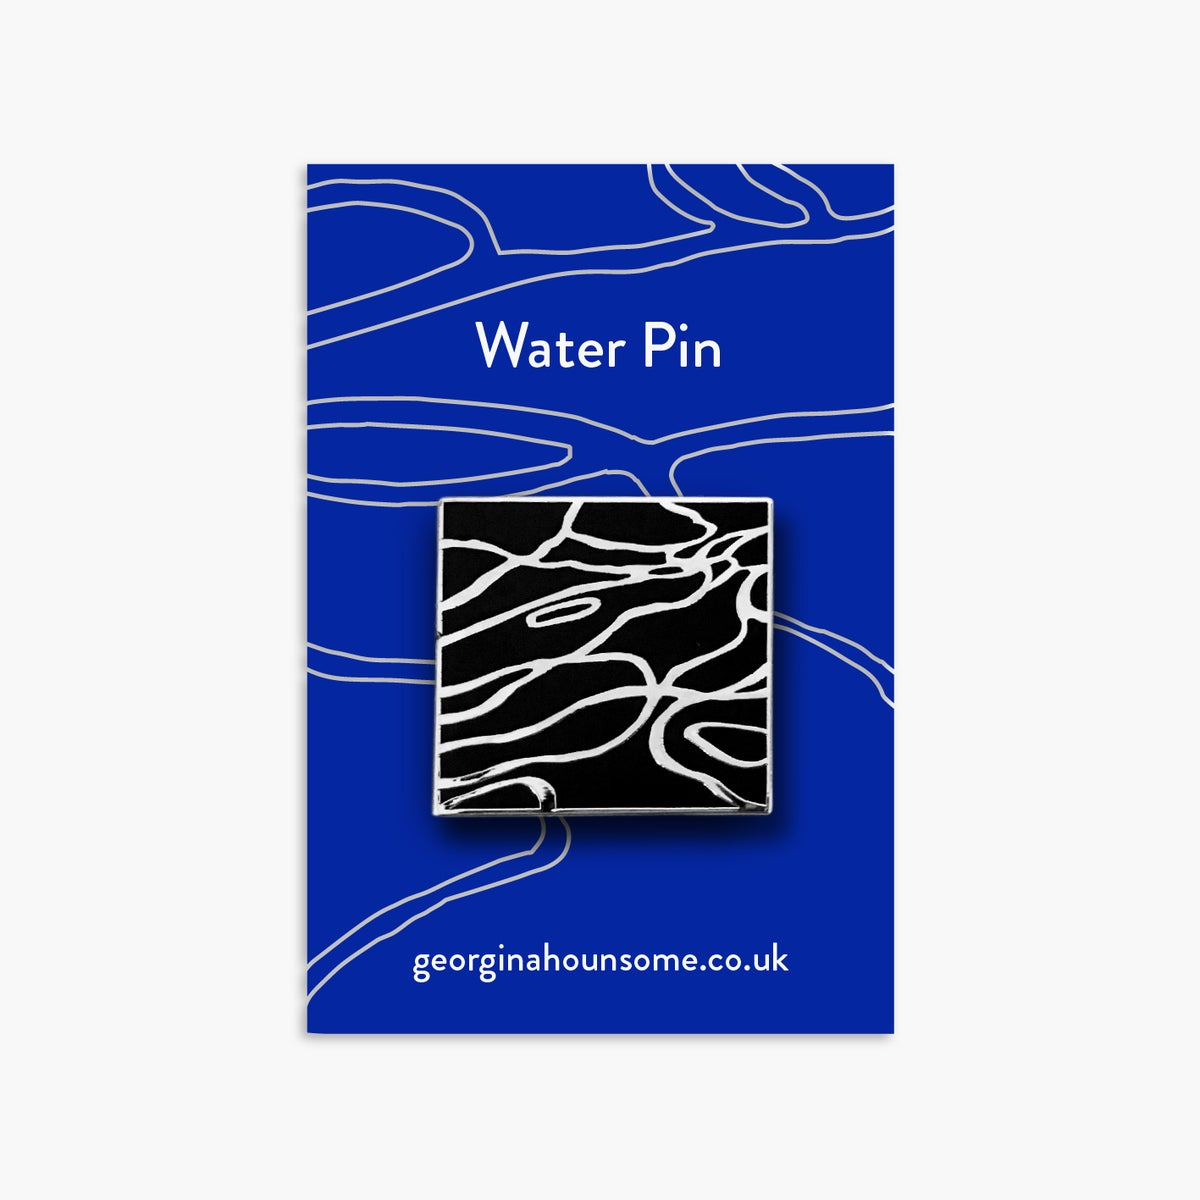 Image of Water pin badge